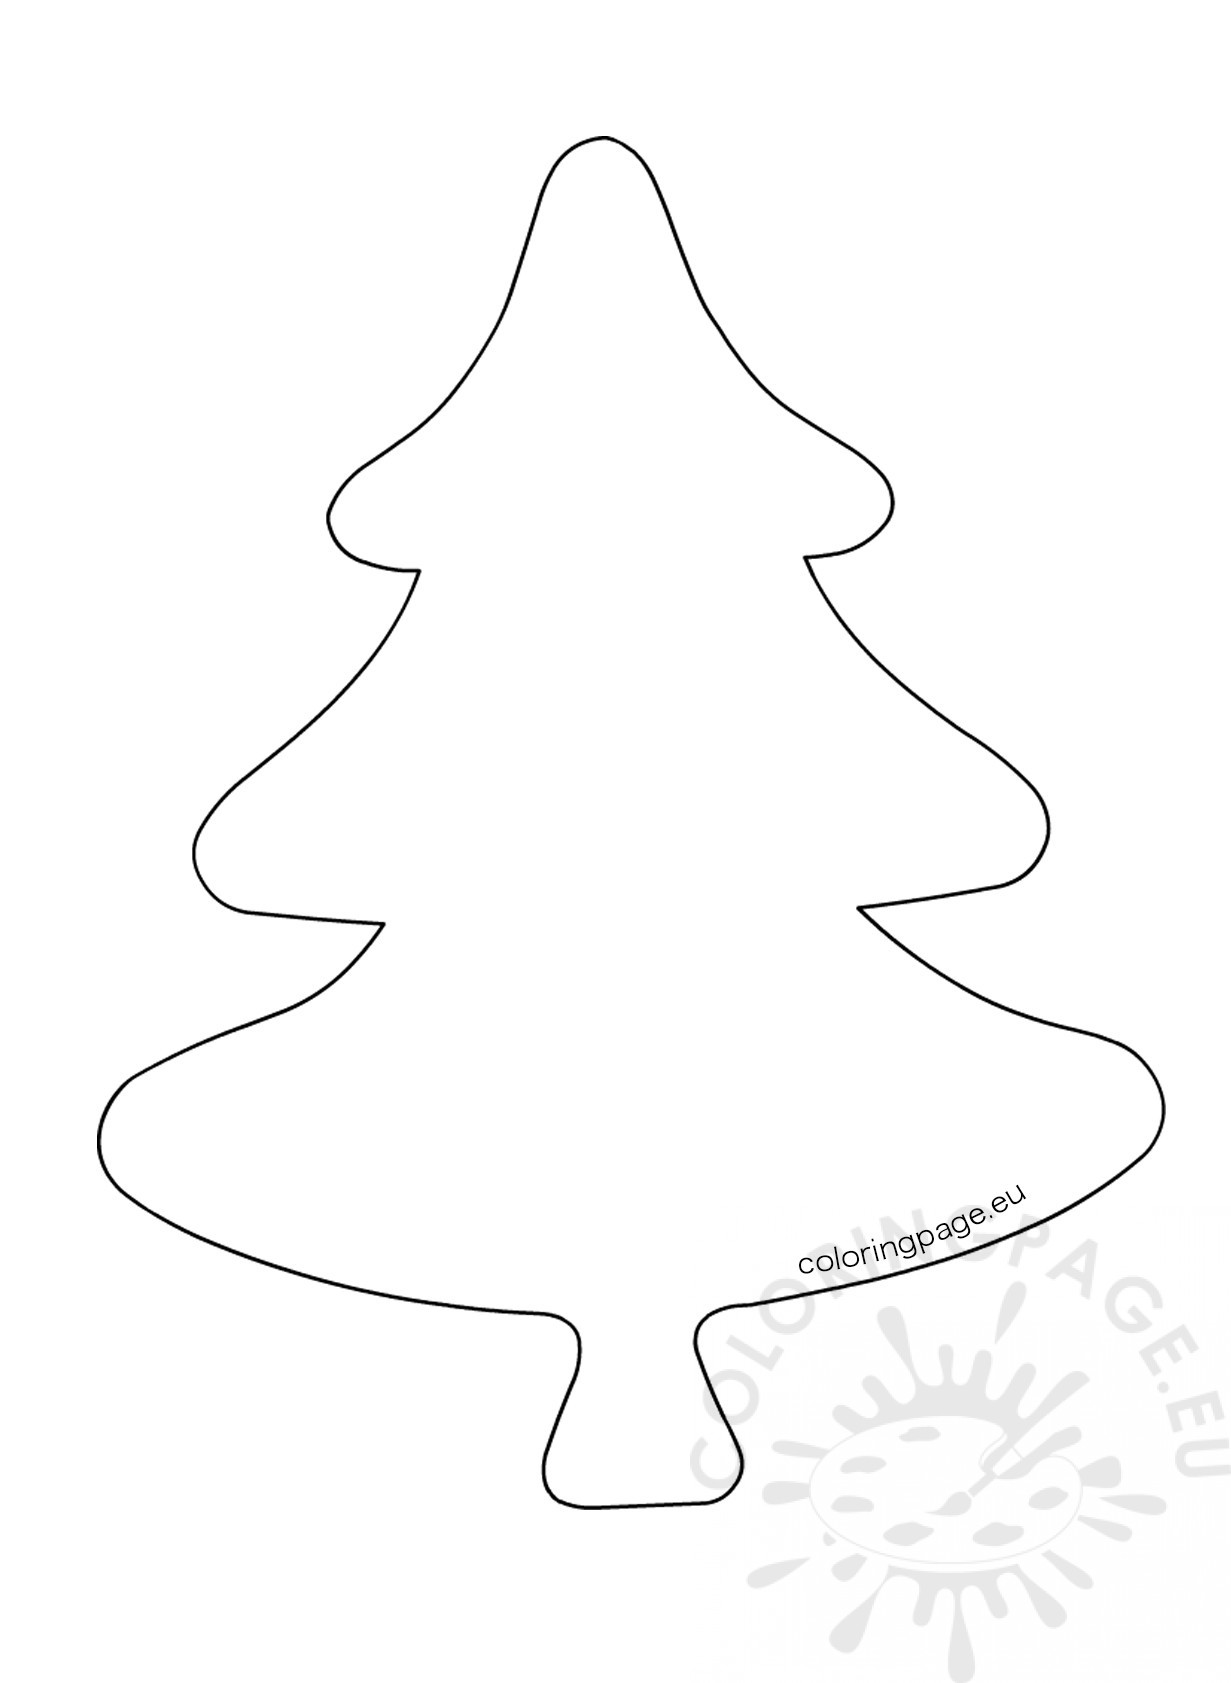 Ridiculous image pertaining to printable ornament templates